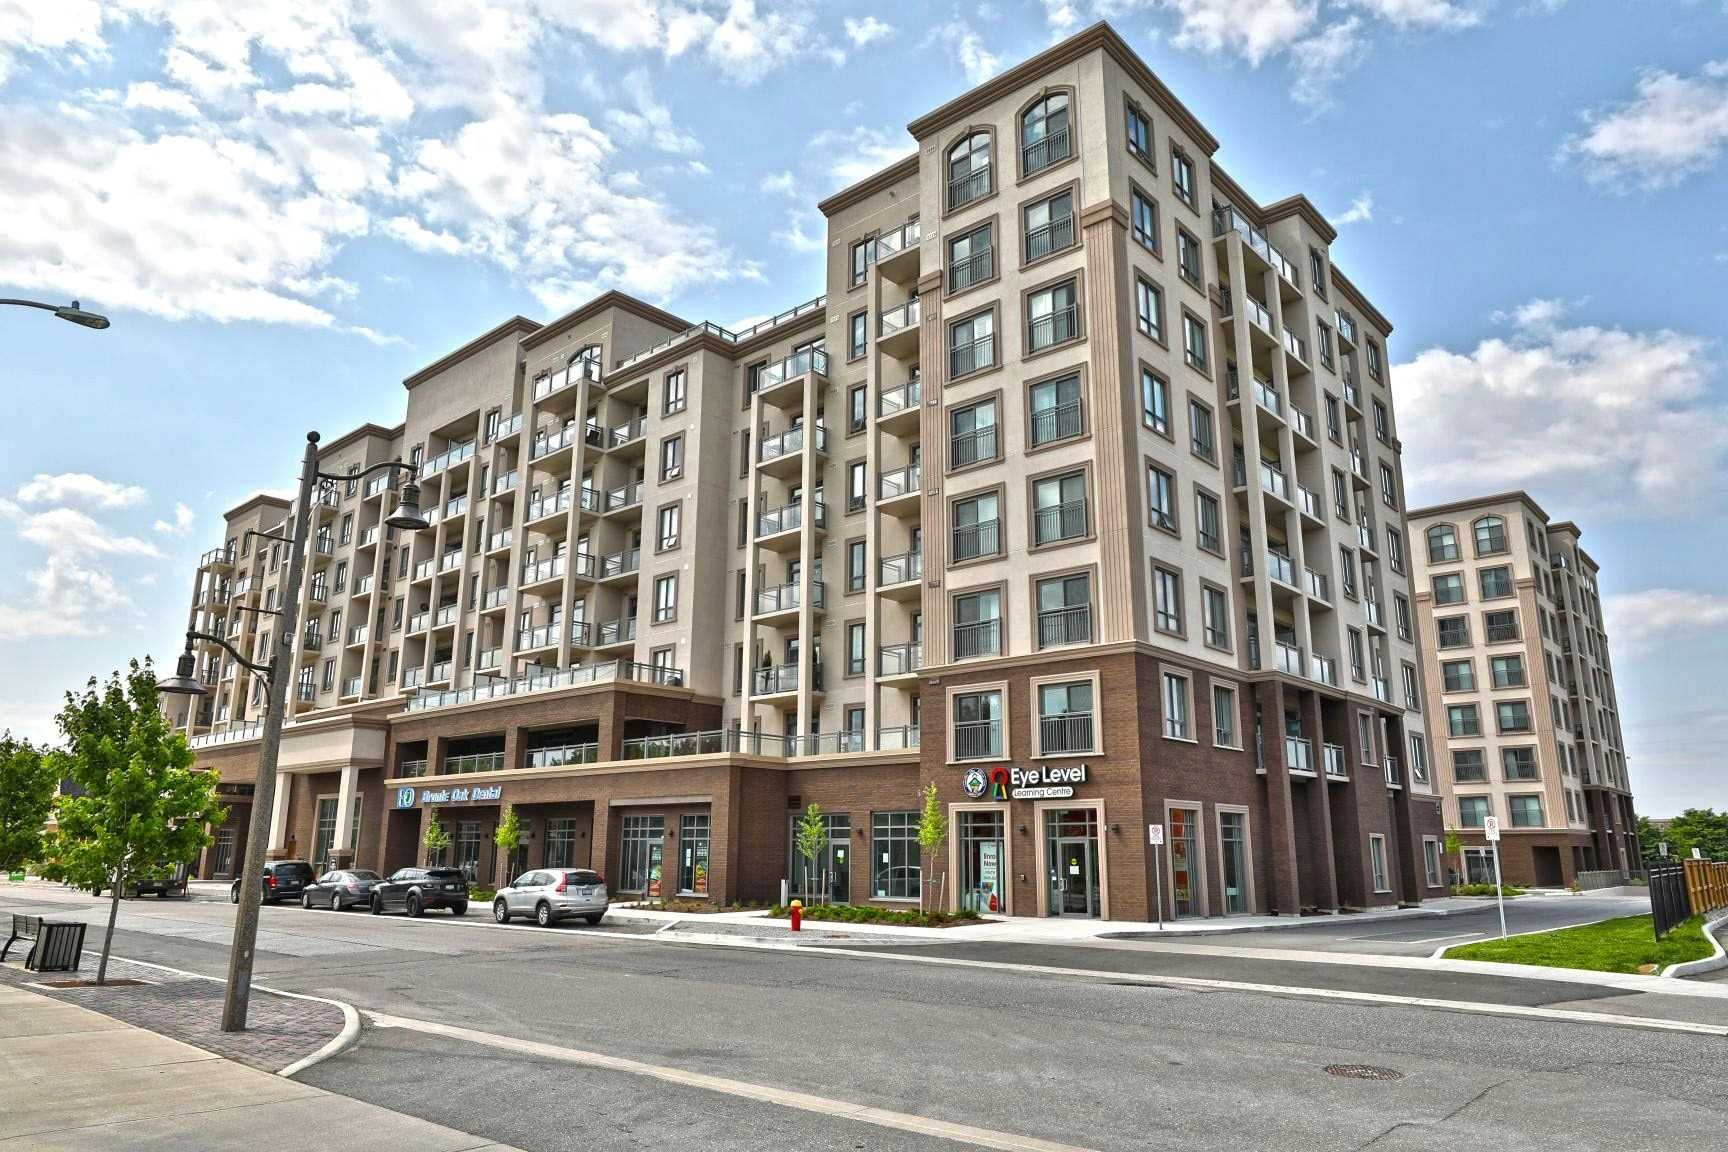 2486 Old Bronte Rd, unit 615 for sale in Toronto - image #1